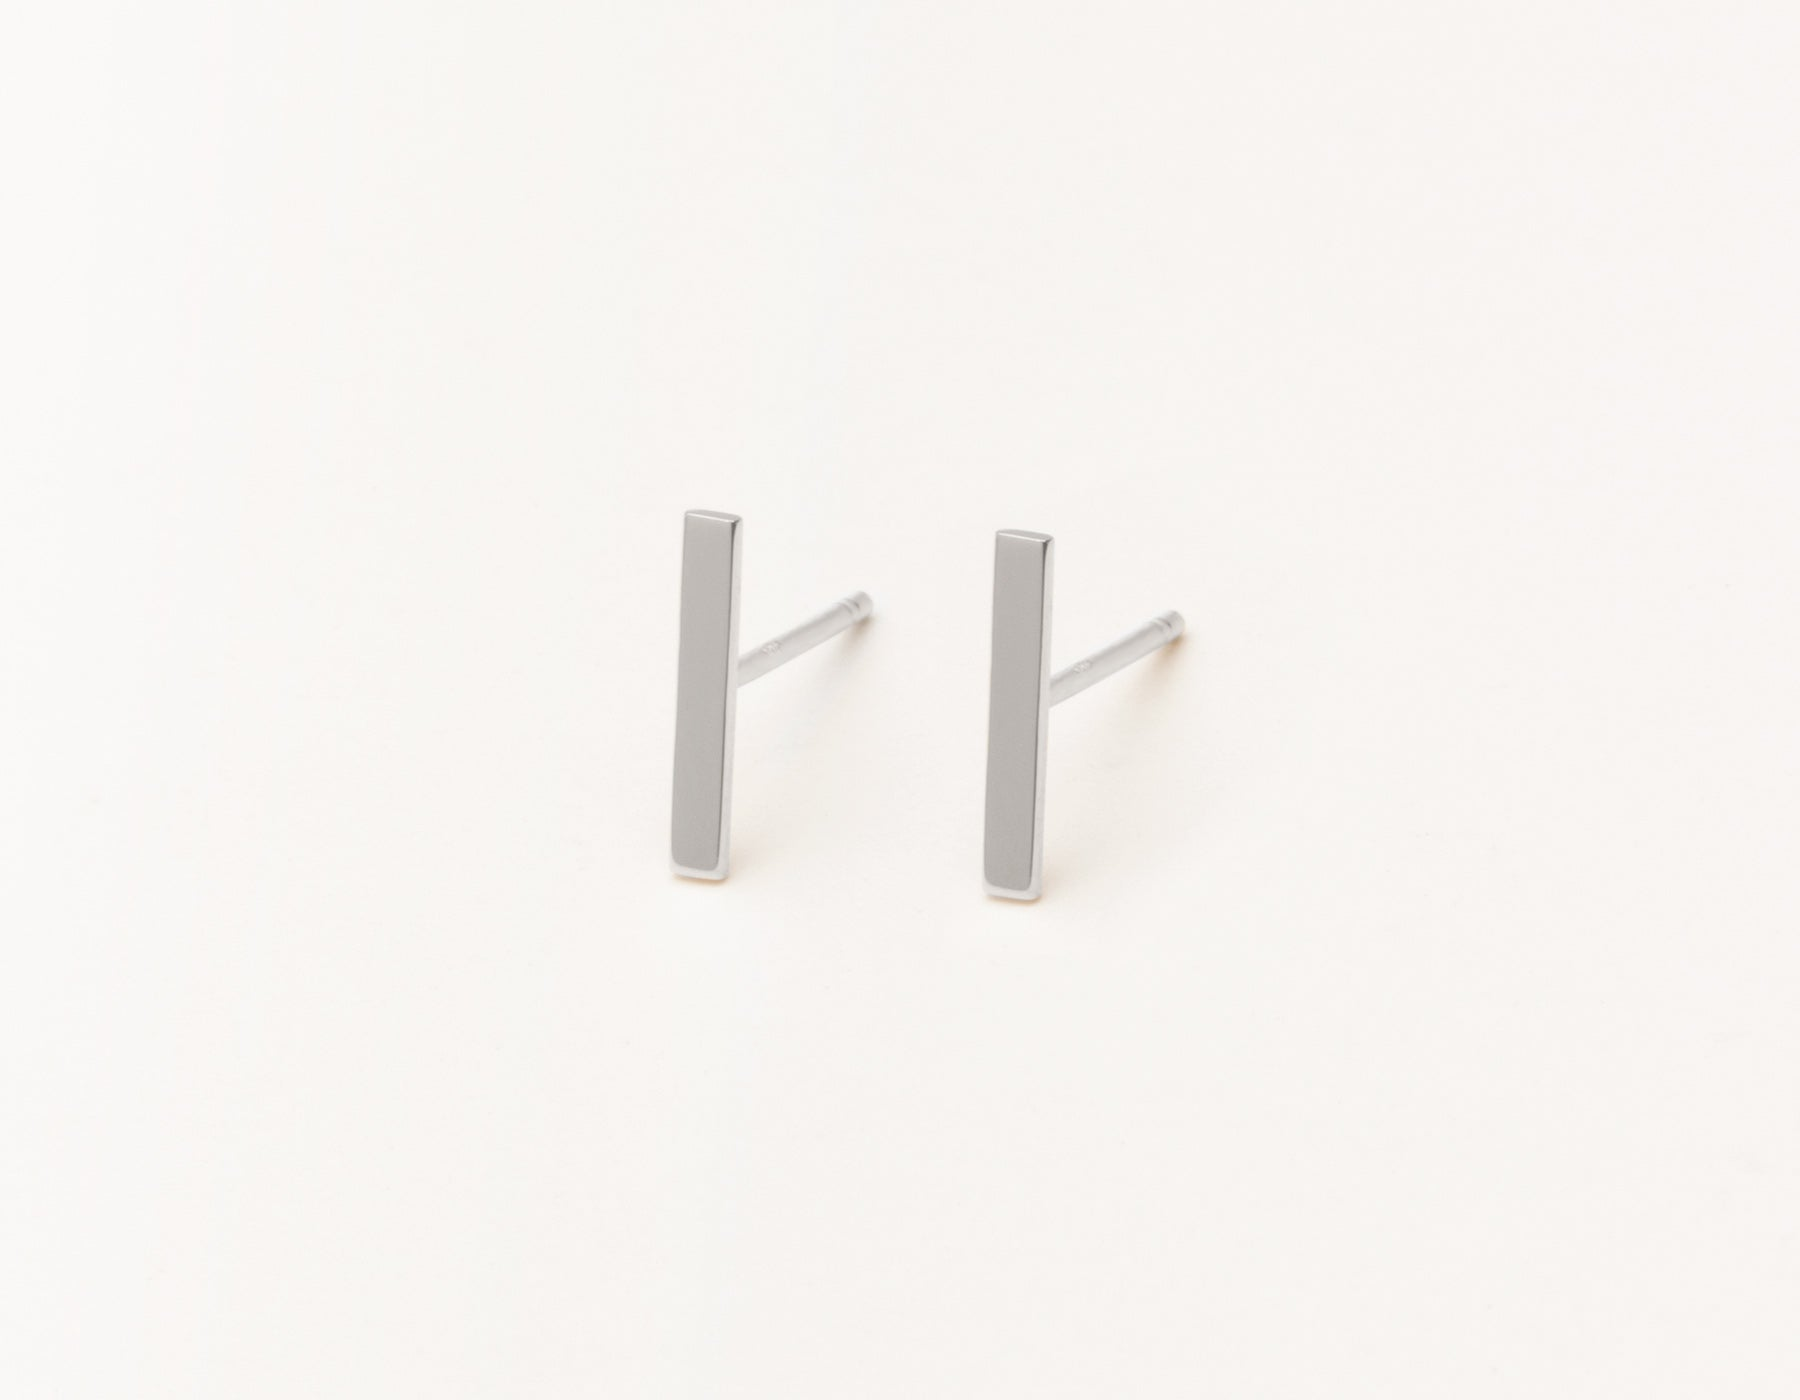 Modern minimalist Line Studs 14k solid gold post earrings Vrai and Oro, 14K White Gold